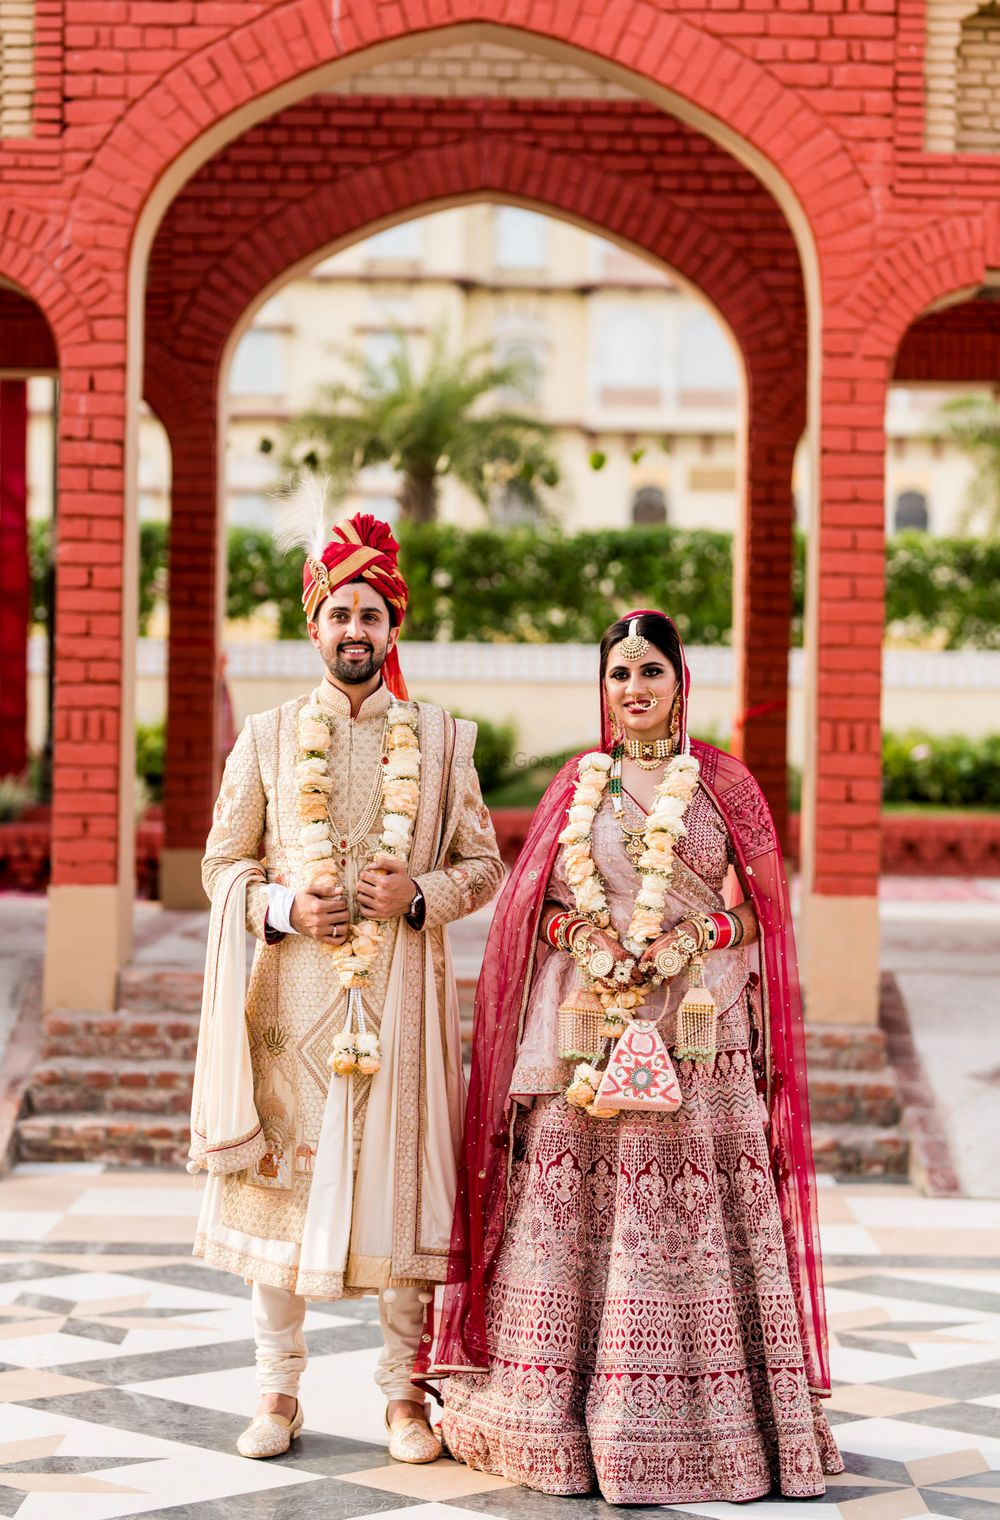 Photo From Rahul X Ravina  - By Golden Aperture